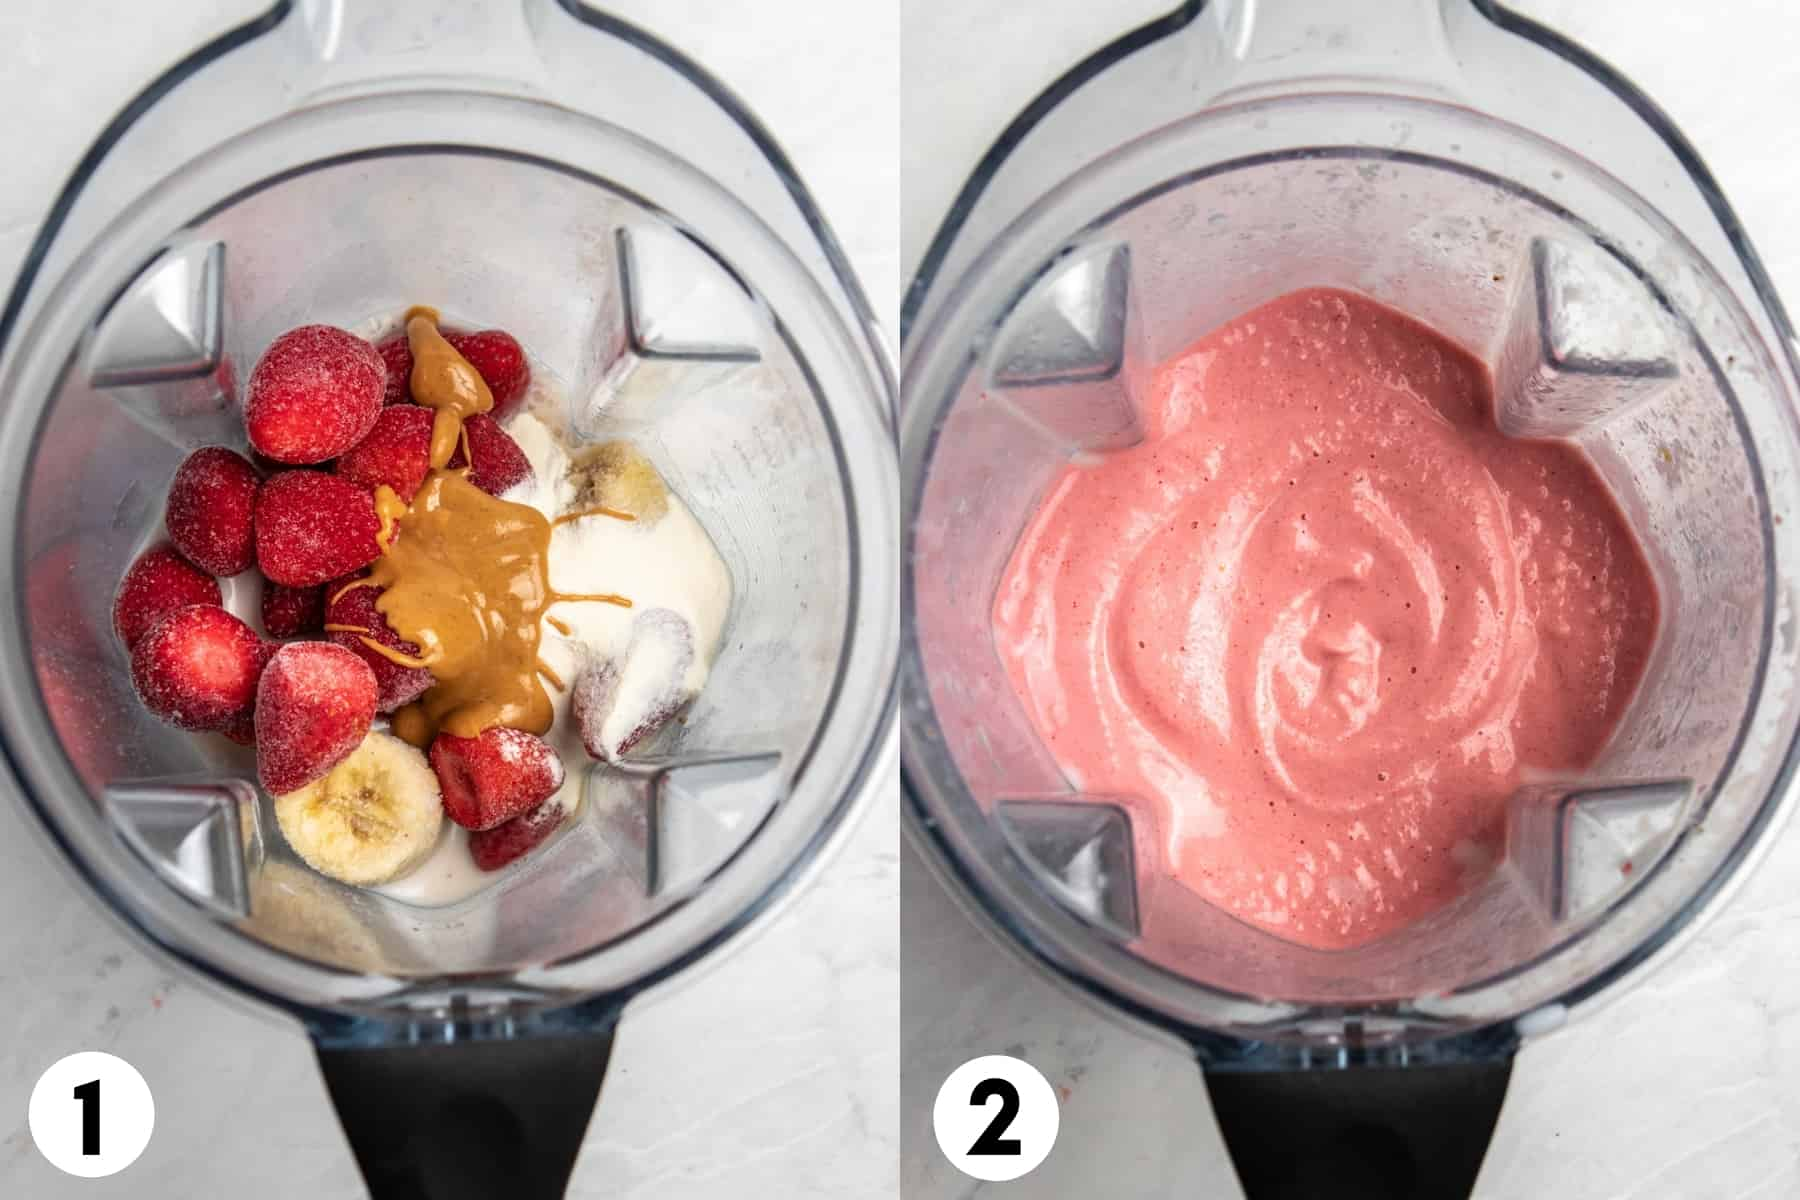 Smoothie ingredients in blender before blended and after.